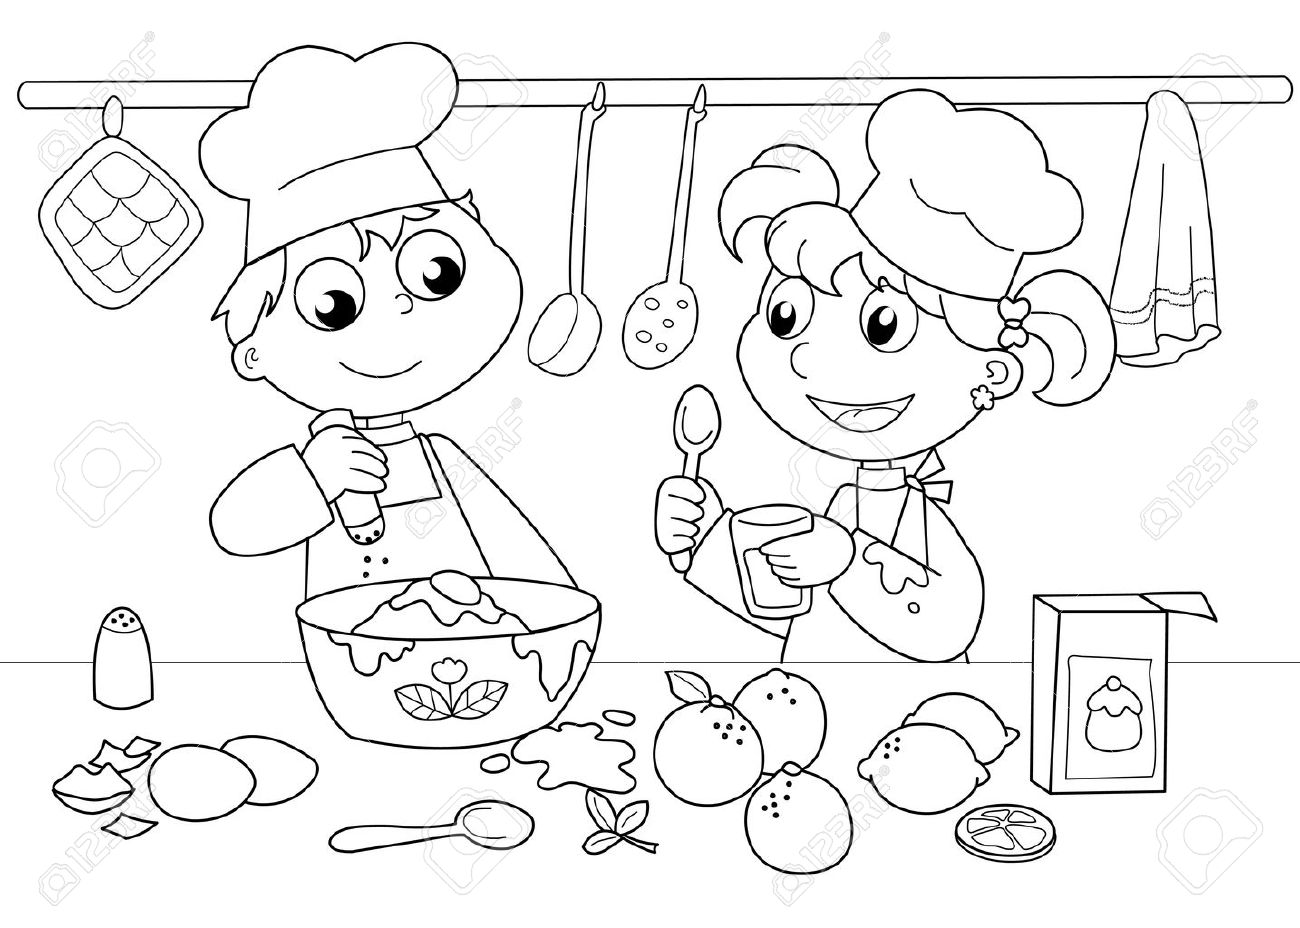 Young boy and girl cooking. Black and white illustration. Standard-Bild - 10988069